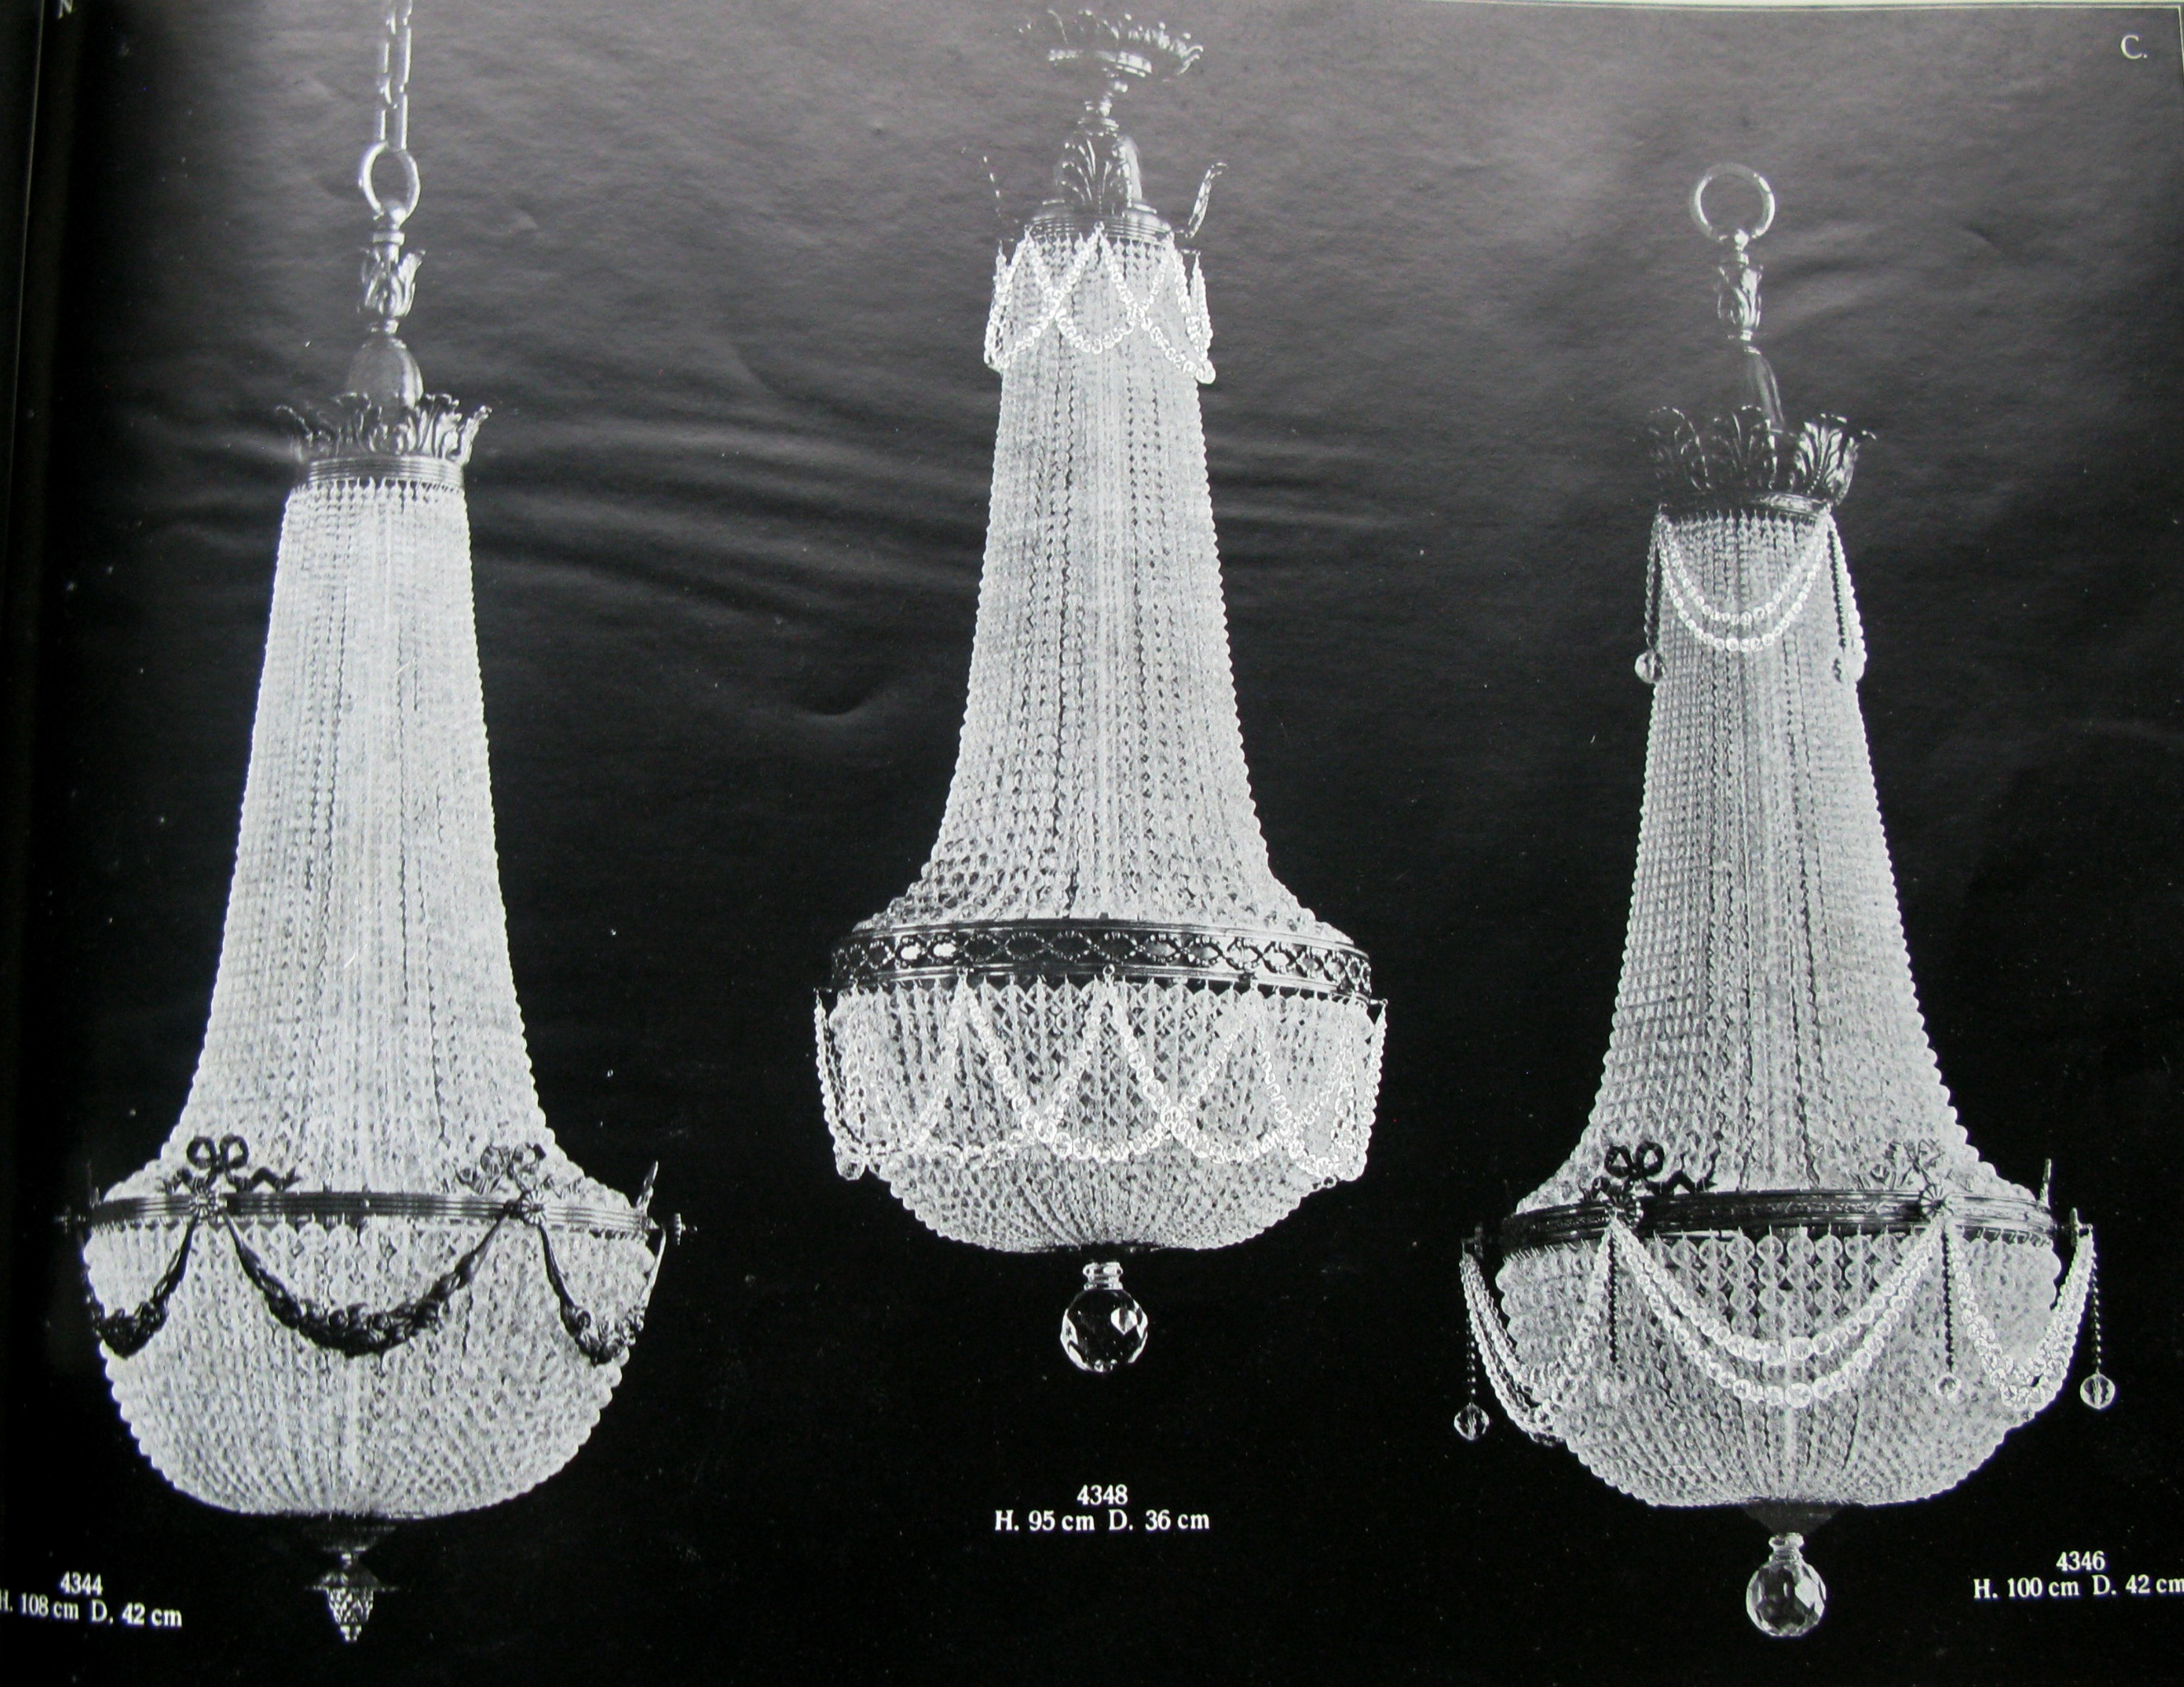 Neumann & Co. The chandeliers from the catalogue of 1928 of the Ebersbach/Saxony factory. Reproduced from: Crystallerie und Beleuchtungskorper N.C.E.S., 1928, p. 370.